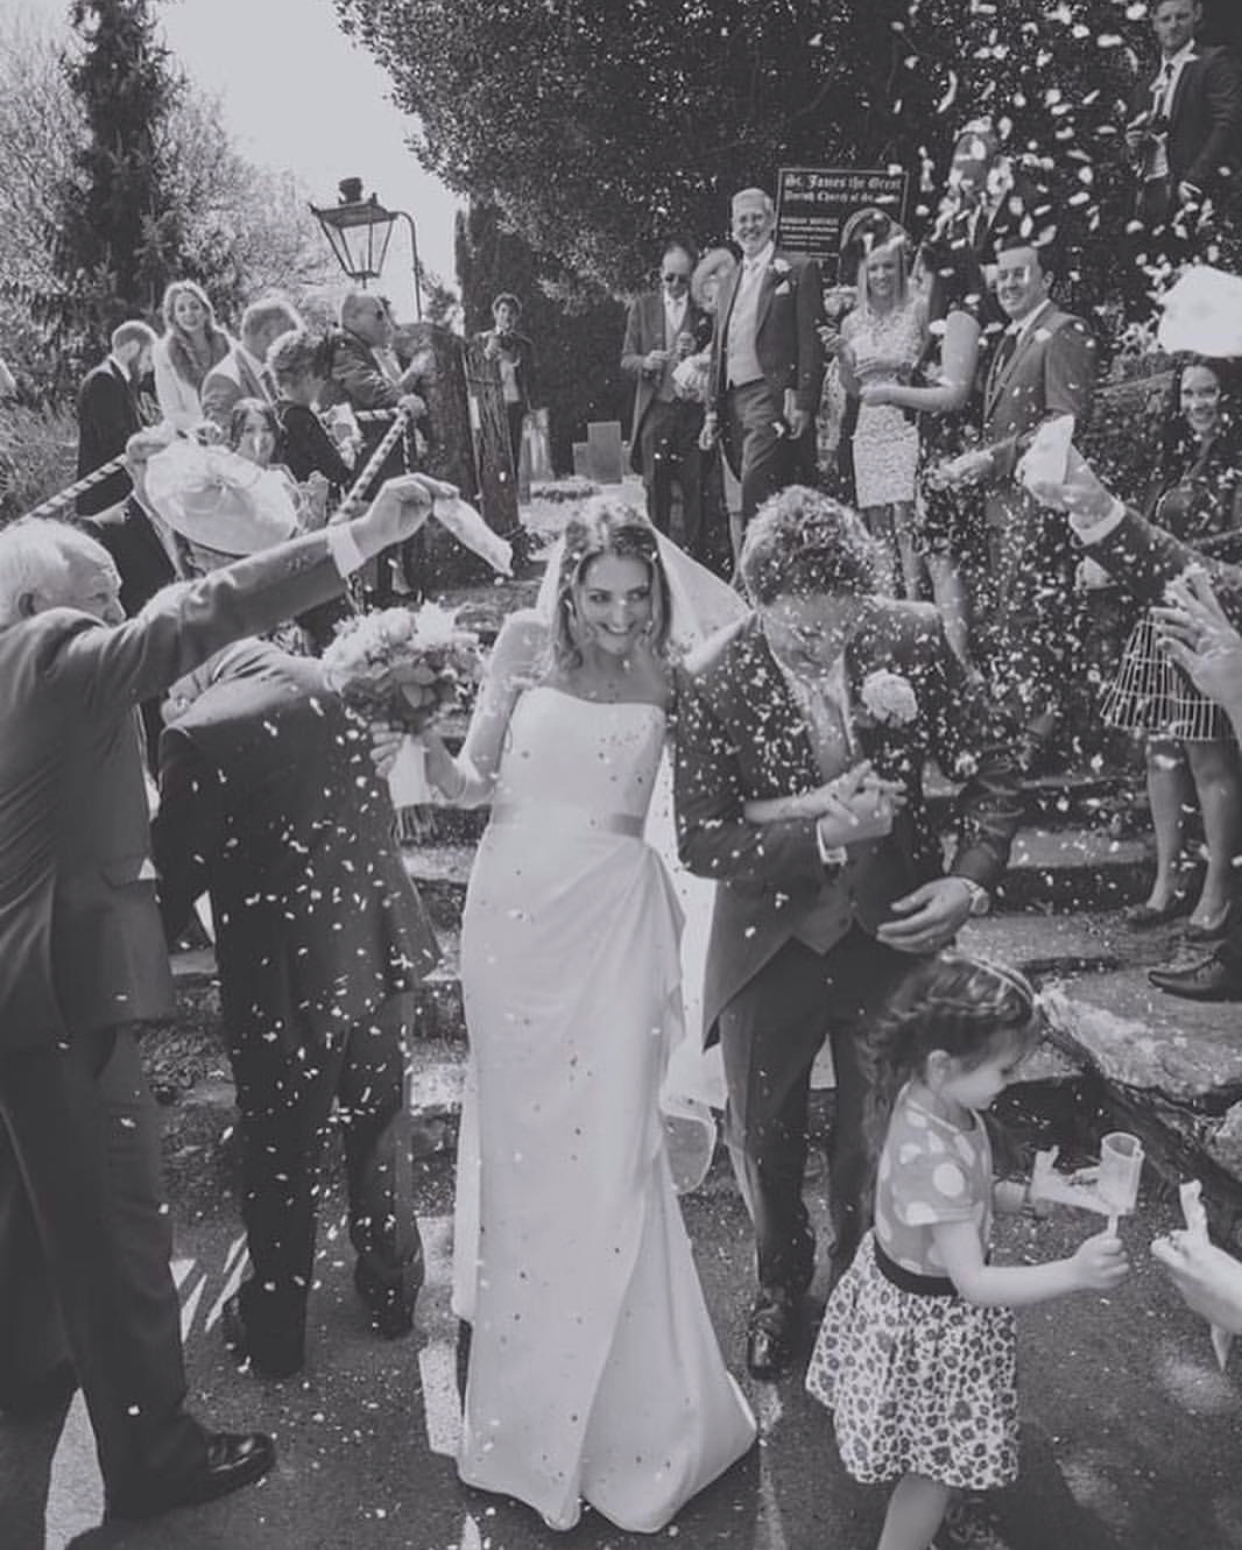 Real bride Laura looking sensational in her strapless wedding dress 'Fitzrovia' by Suzanne Neville.